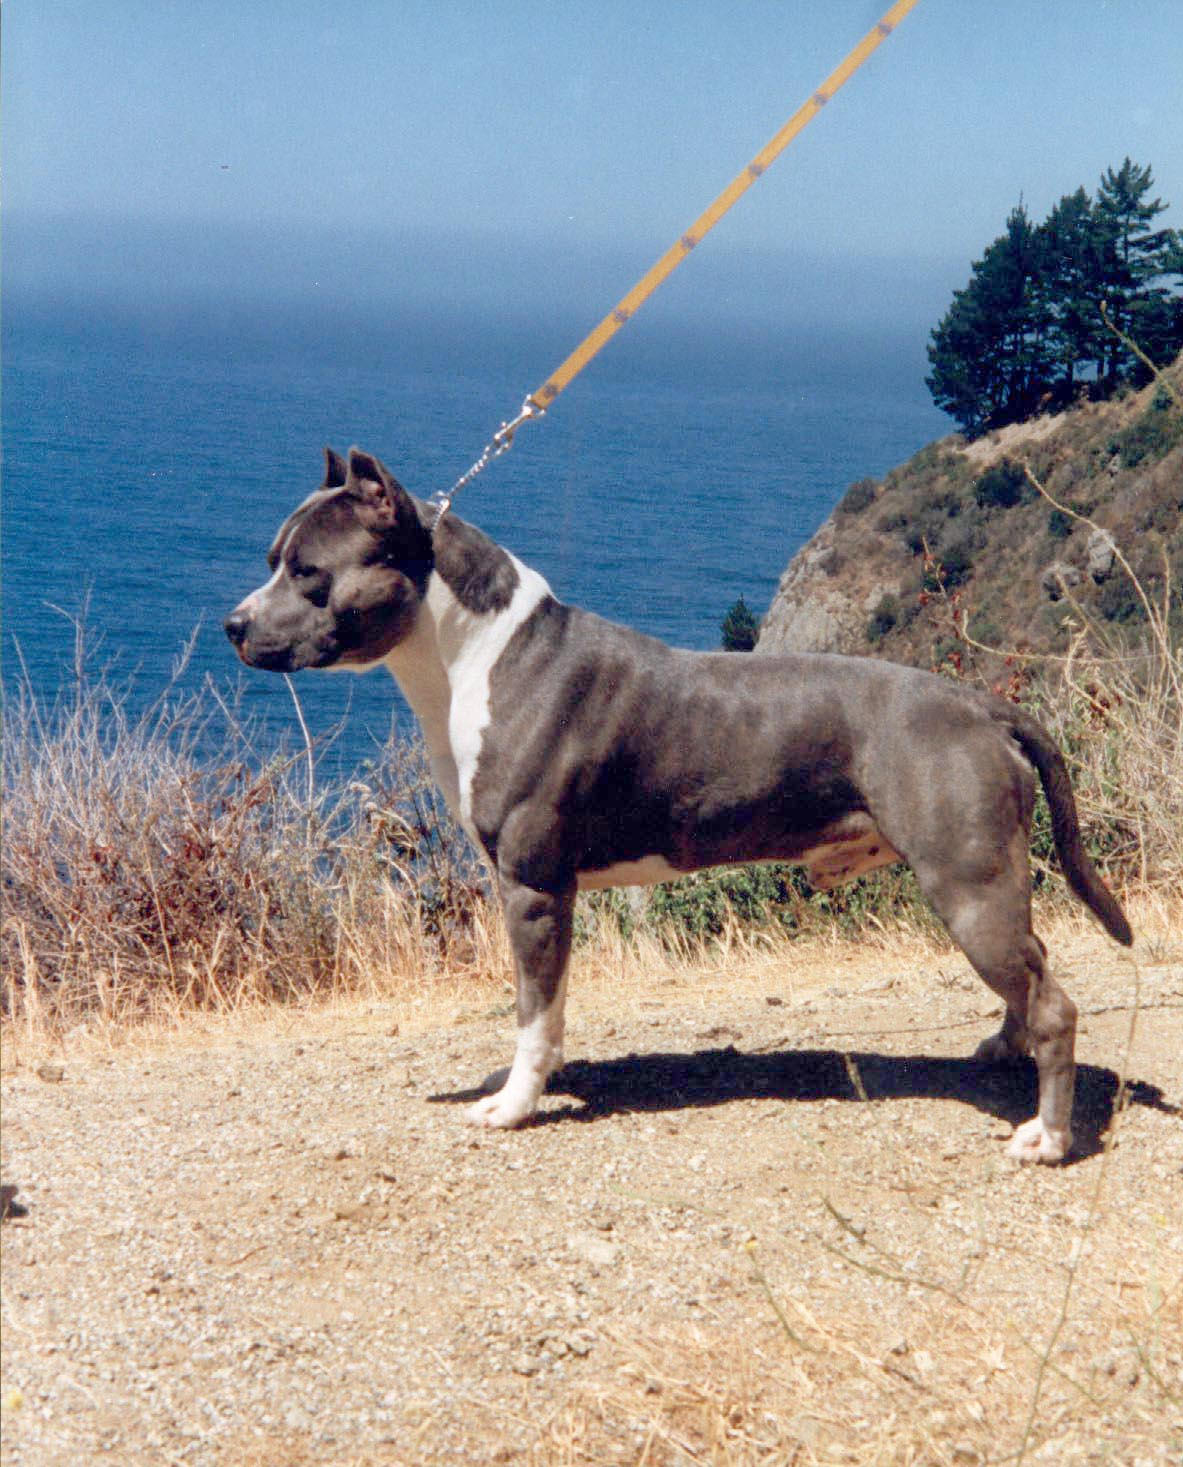 Add photos American Staffordshire Terrier on the seaside in your blog: